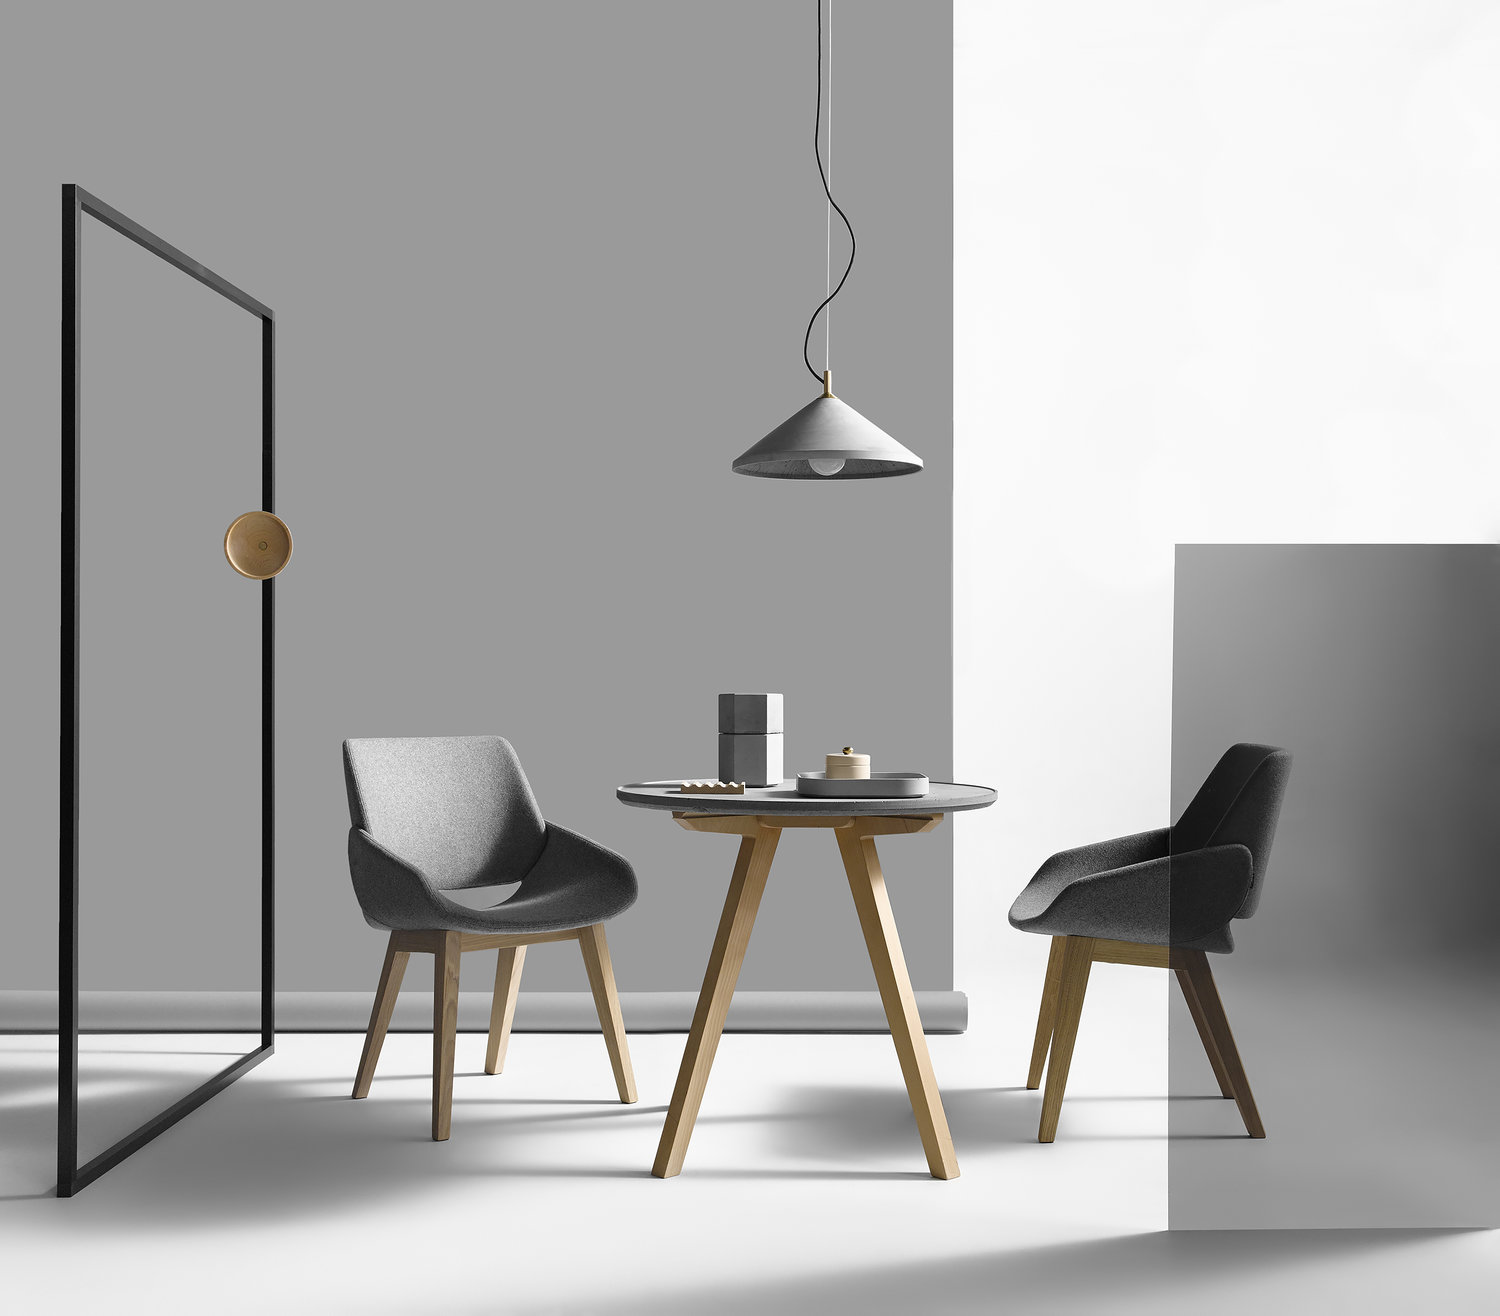 How to Protect Nature with Contemporary Design - Maison et Objet 2019 - Contemporary Designs maison et objet 2019 How to Protect Nature with Contemporary Design – Maison et Objet 2019 How to Protect Nature with Contemporary Design Maison et Objet 2019 Contemporary Designs